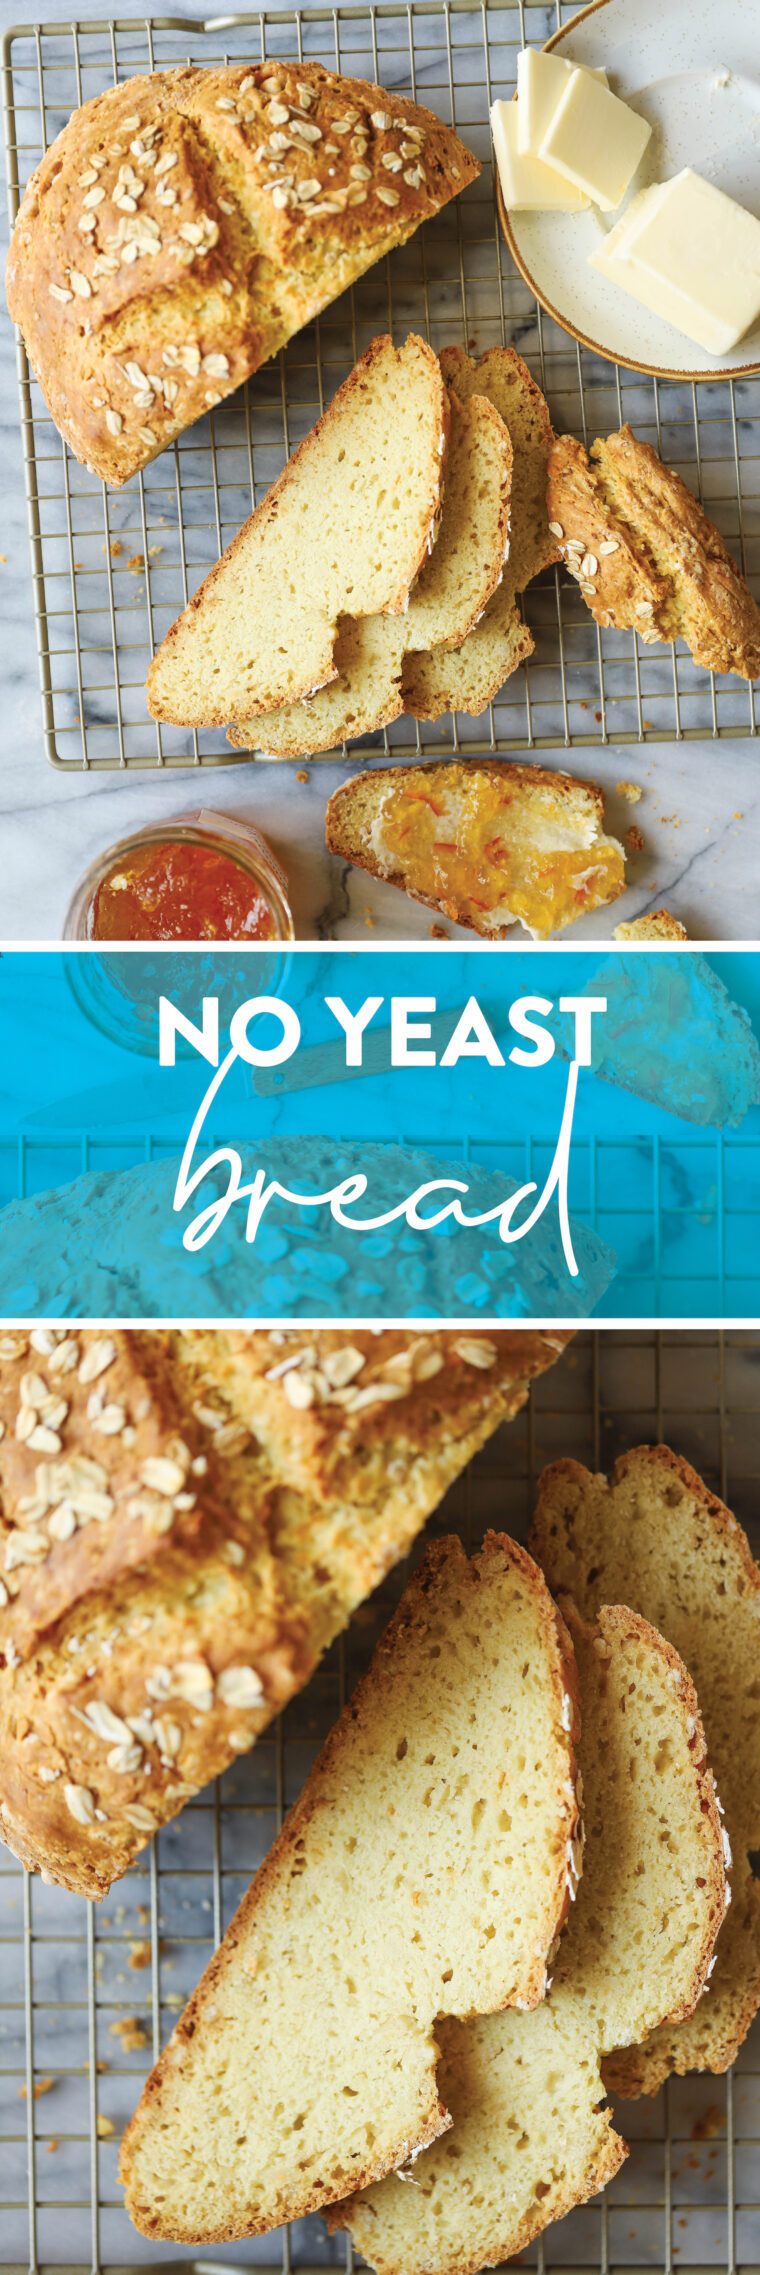 No Yeast Bread - Yes, you can make beautiful homemade rustic bread WITHOUT the yeast, proof, or rise. Made so quickly + easily. AND SO GOOD.